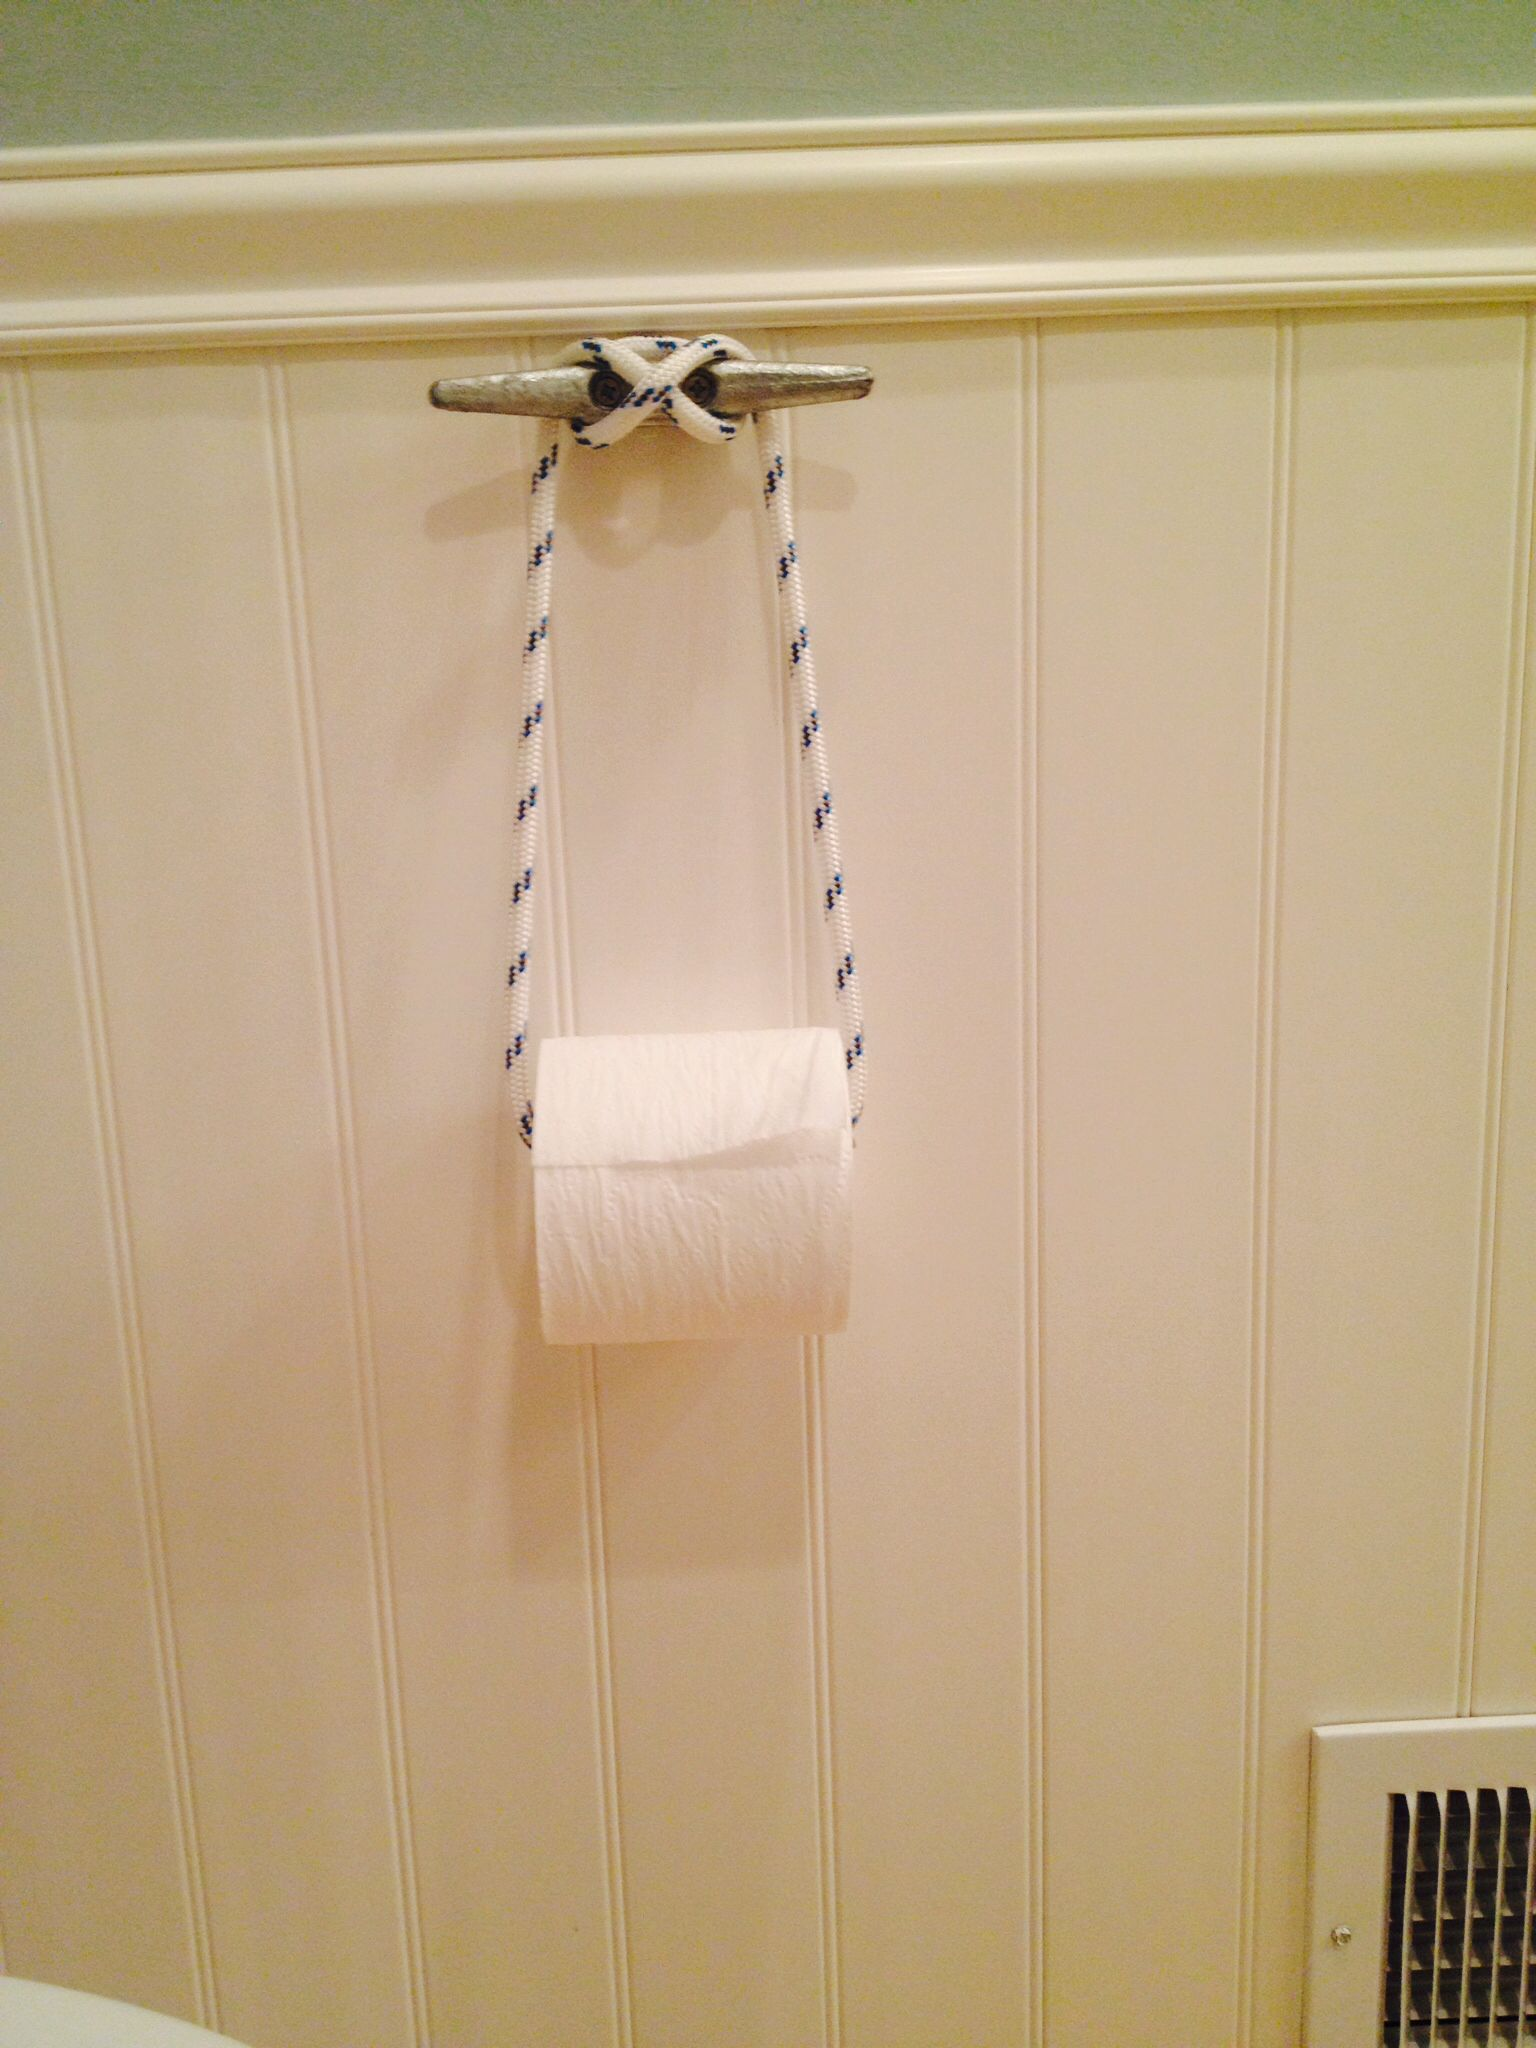 Boat Cleat Toilet Paper Holder 3 Ft Of 5 16 Rope 1 6 Cleat W